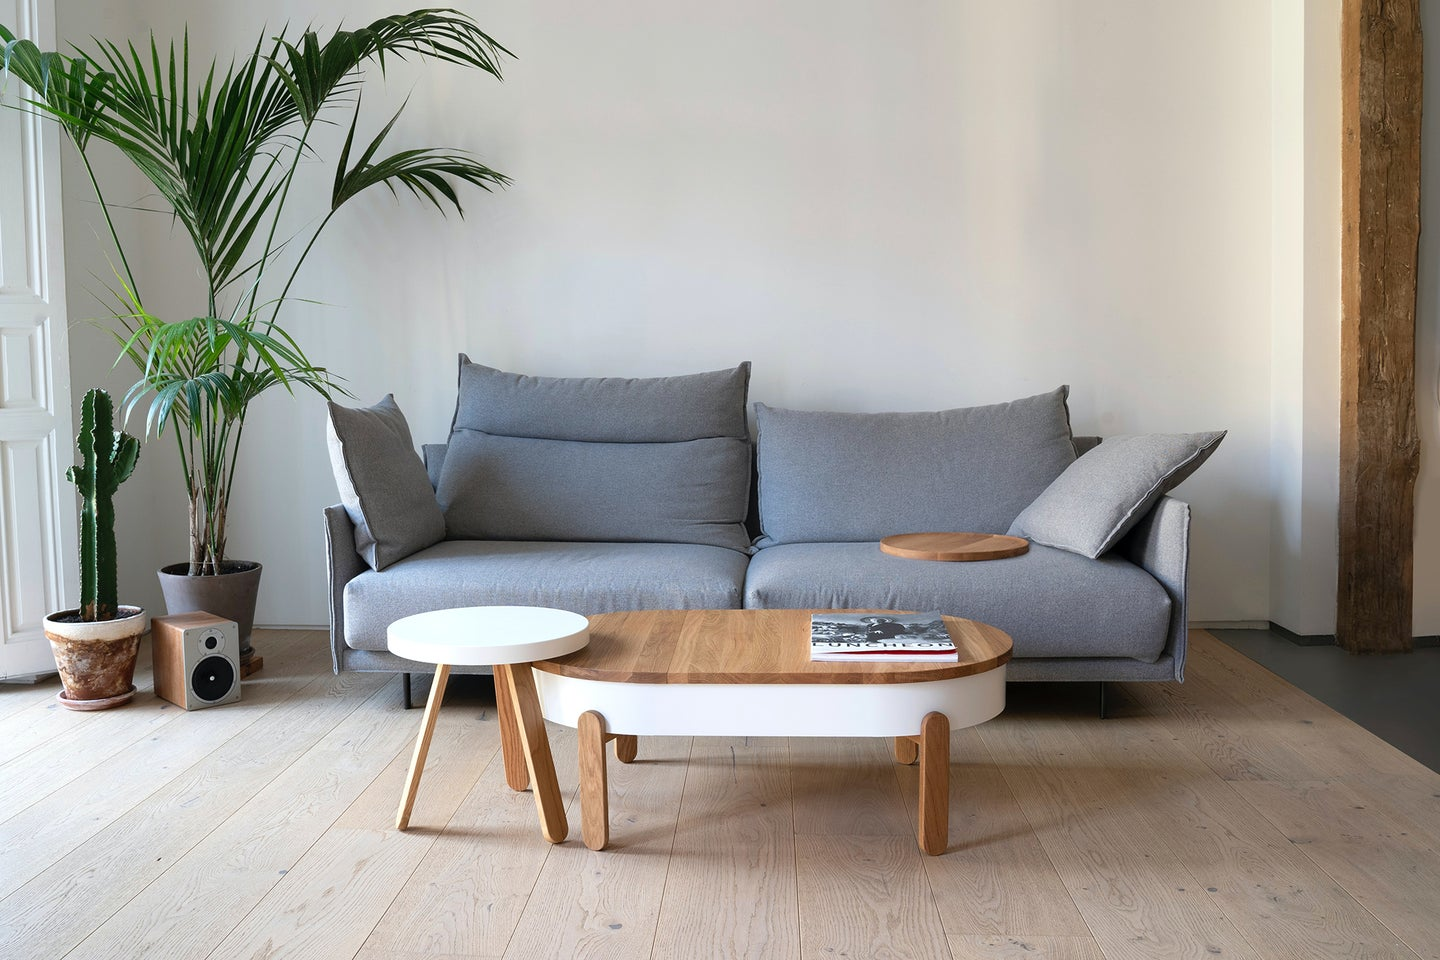 organized living room with plants, coffee table, and a grey couch